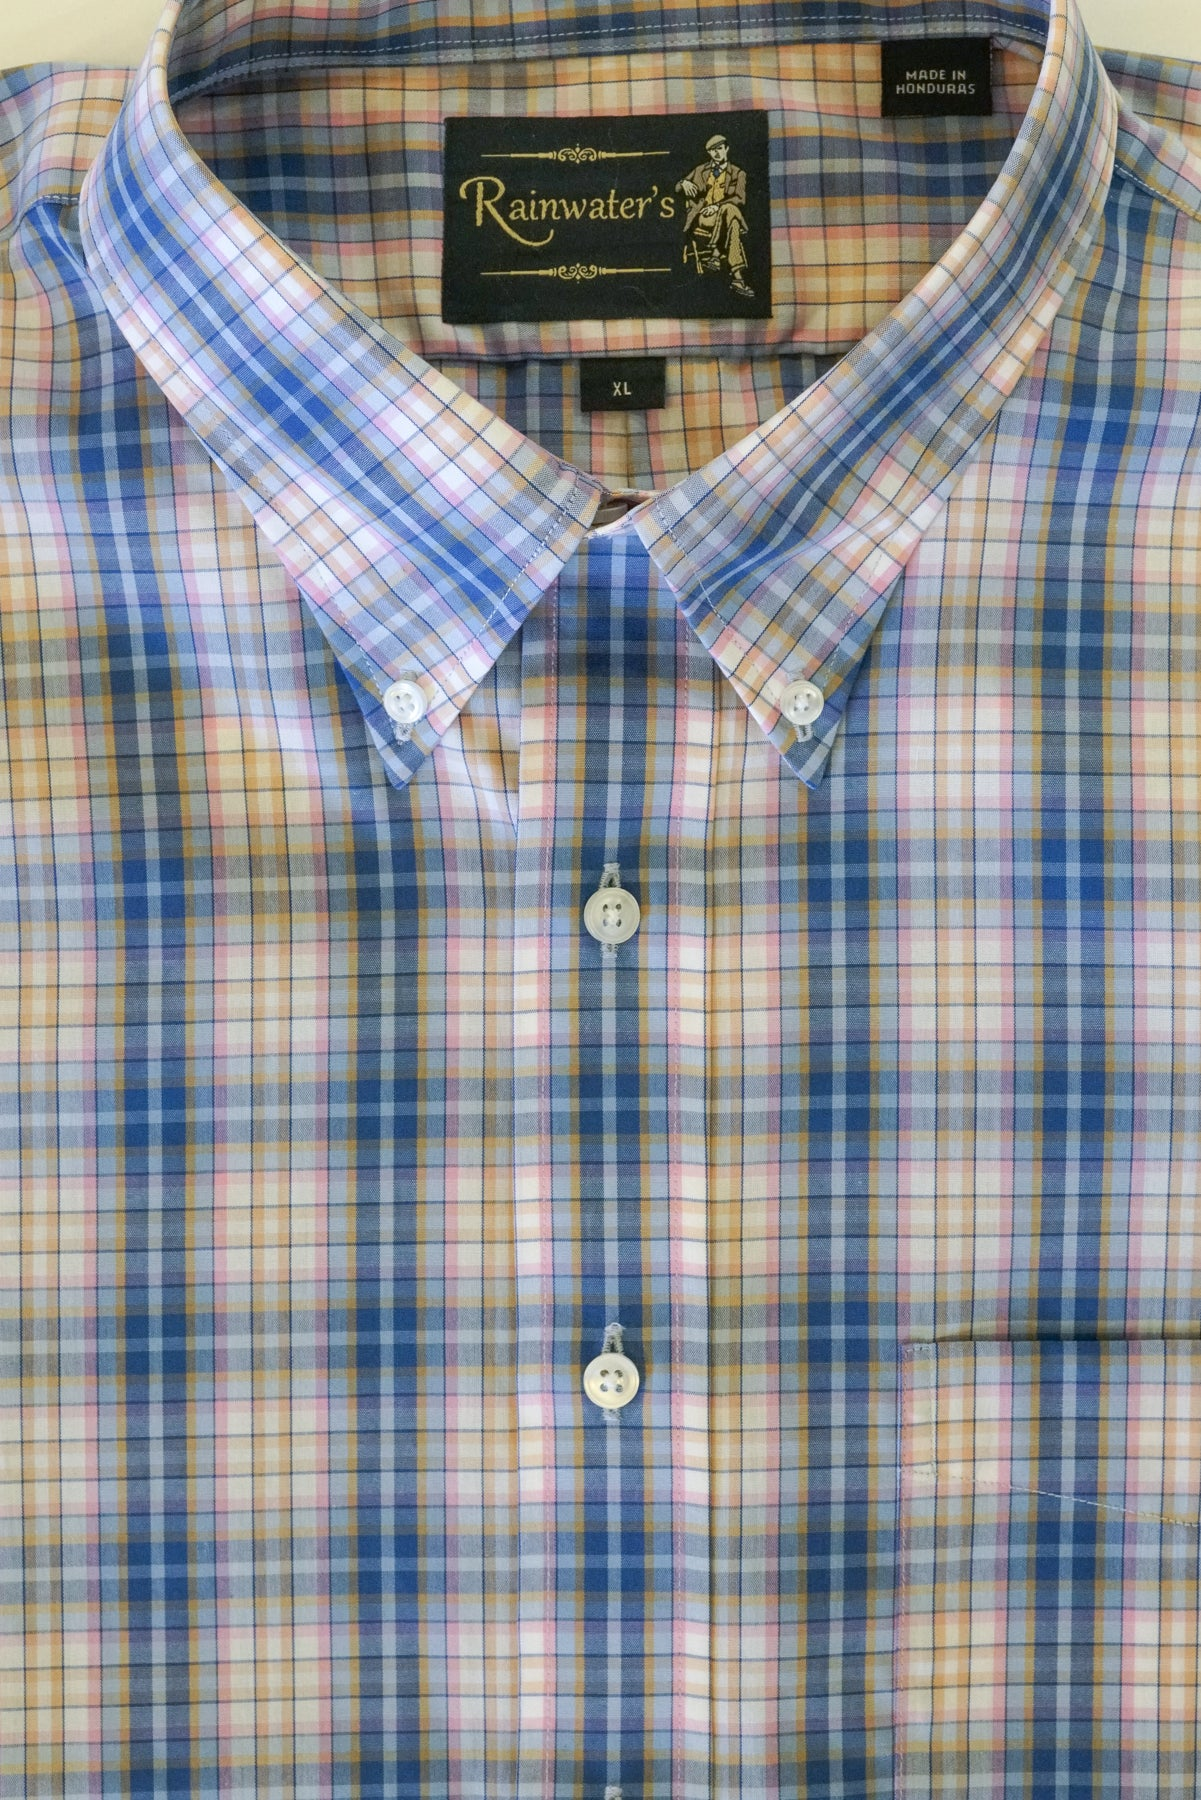 Blue & Pink Plaid with Man in Chair Logo Button Down Wrinkle Free Sport Shirt by Rainwater's - Rainwater's